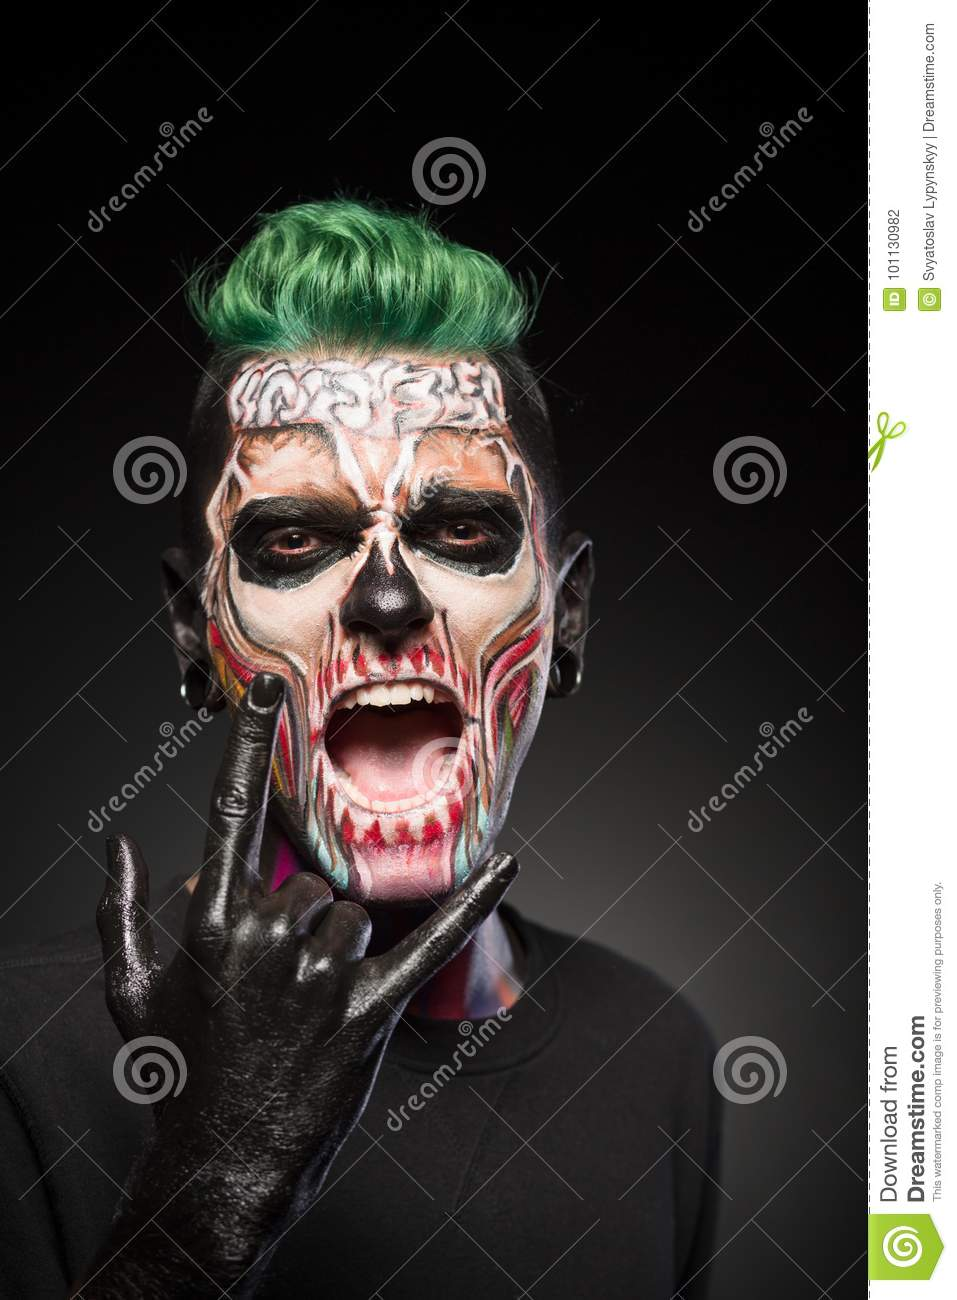 man with halloween makeup showing tongue. stock photo - image of